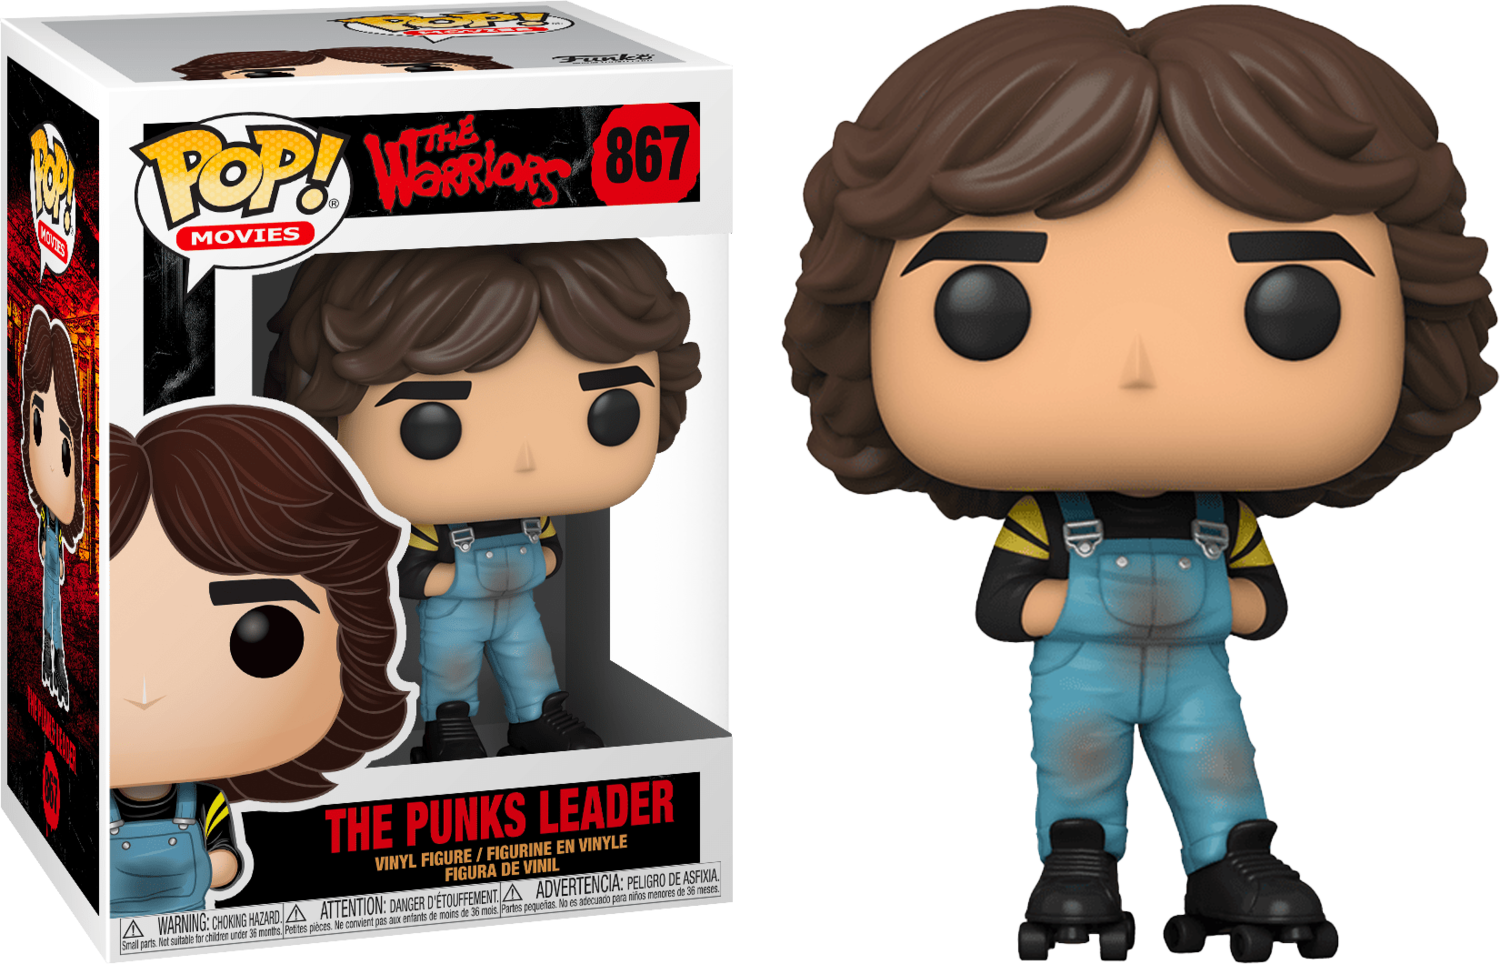 The Warriors - The Punks Leader Pop! Vinyl Figure